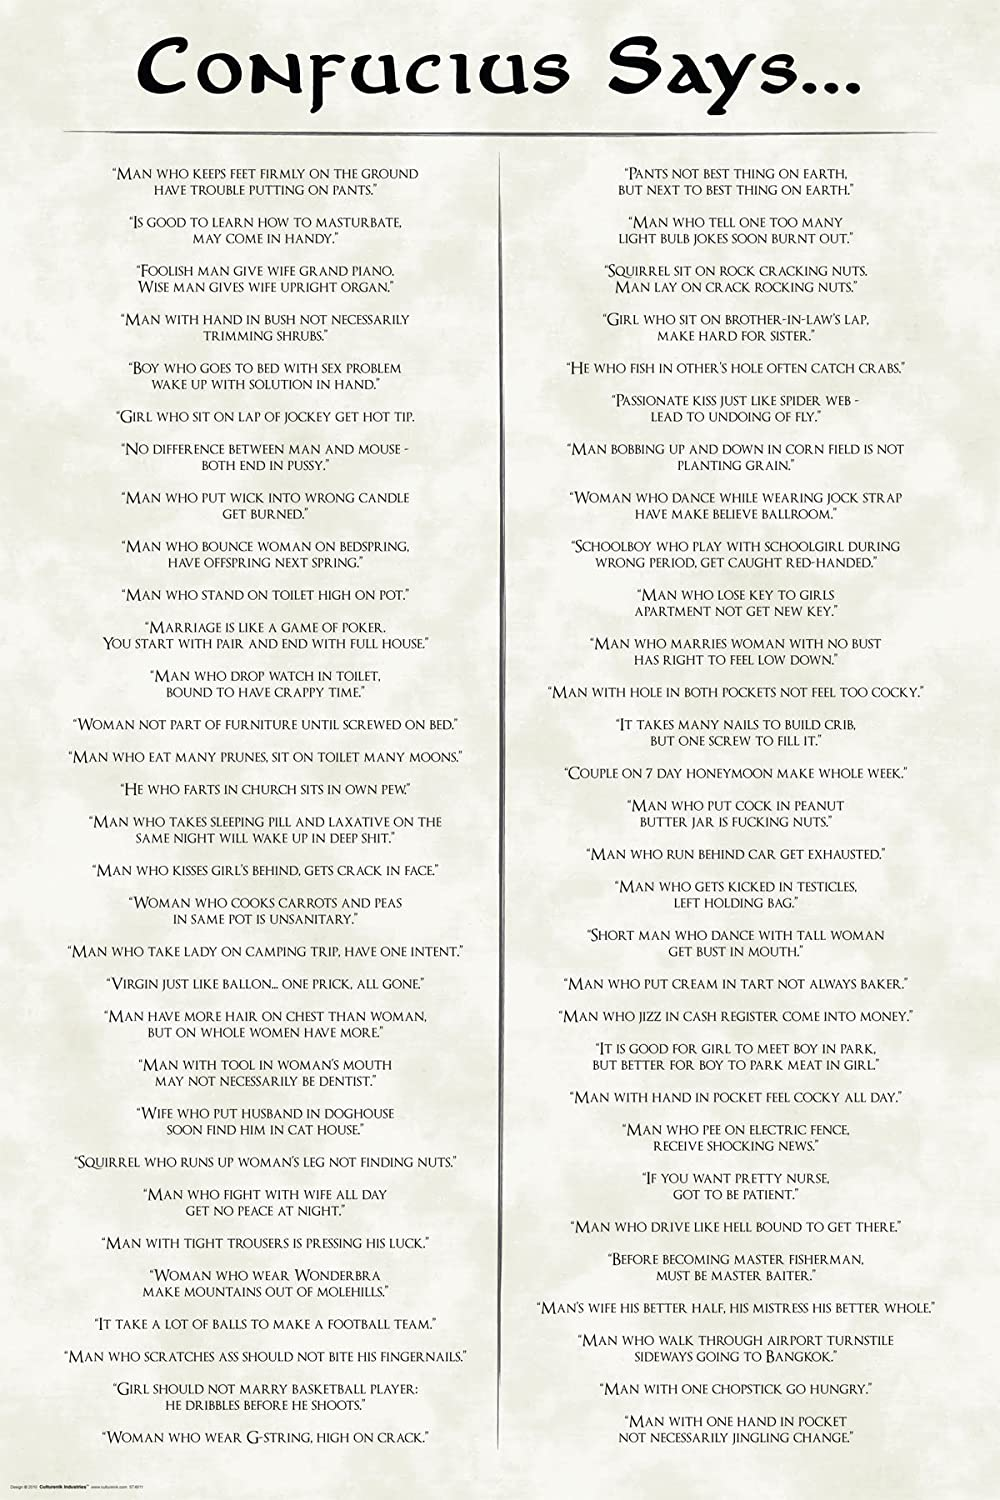 Confucius Says Quotes Novelty Decorative College Humor Poster Print 24x36